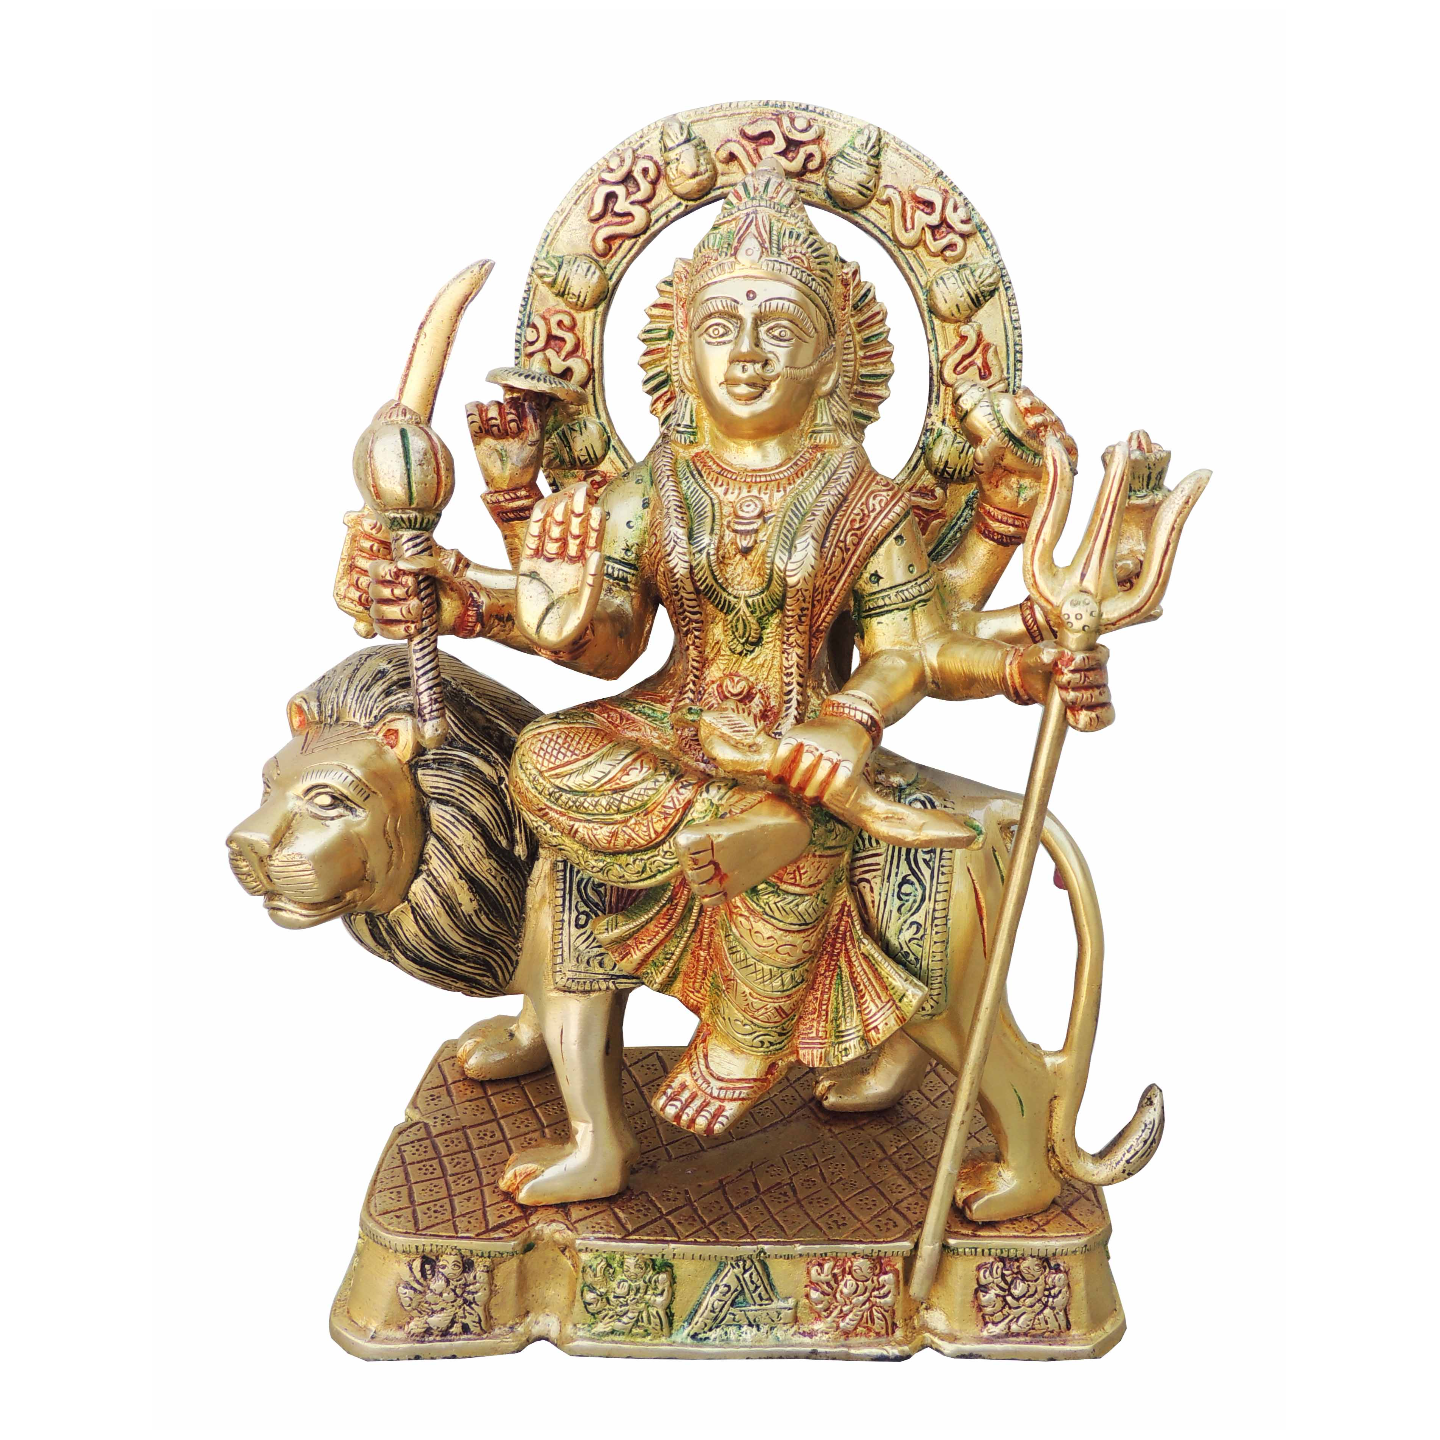 Brass Durga Ji StatueMurtiIdol With Multicolour Lacquer Finish-12 Inch BS937 Y